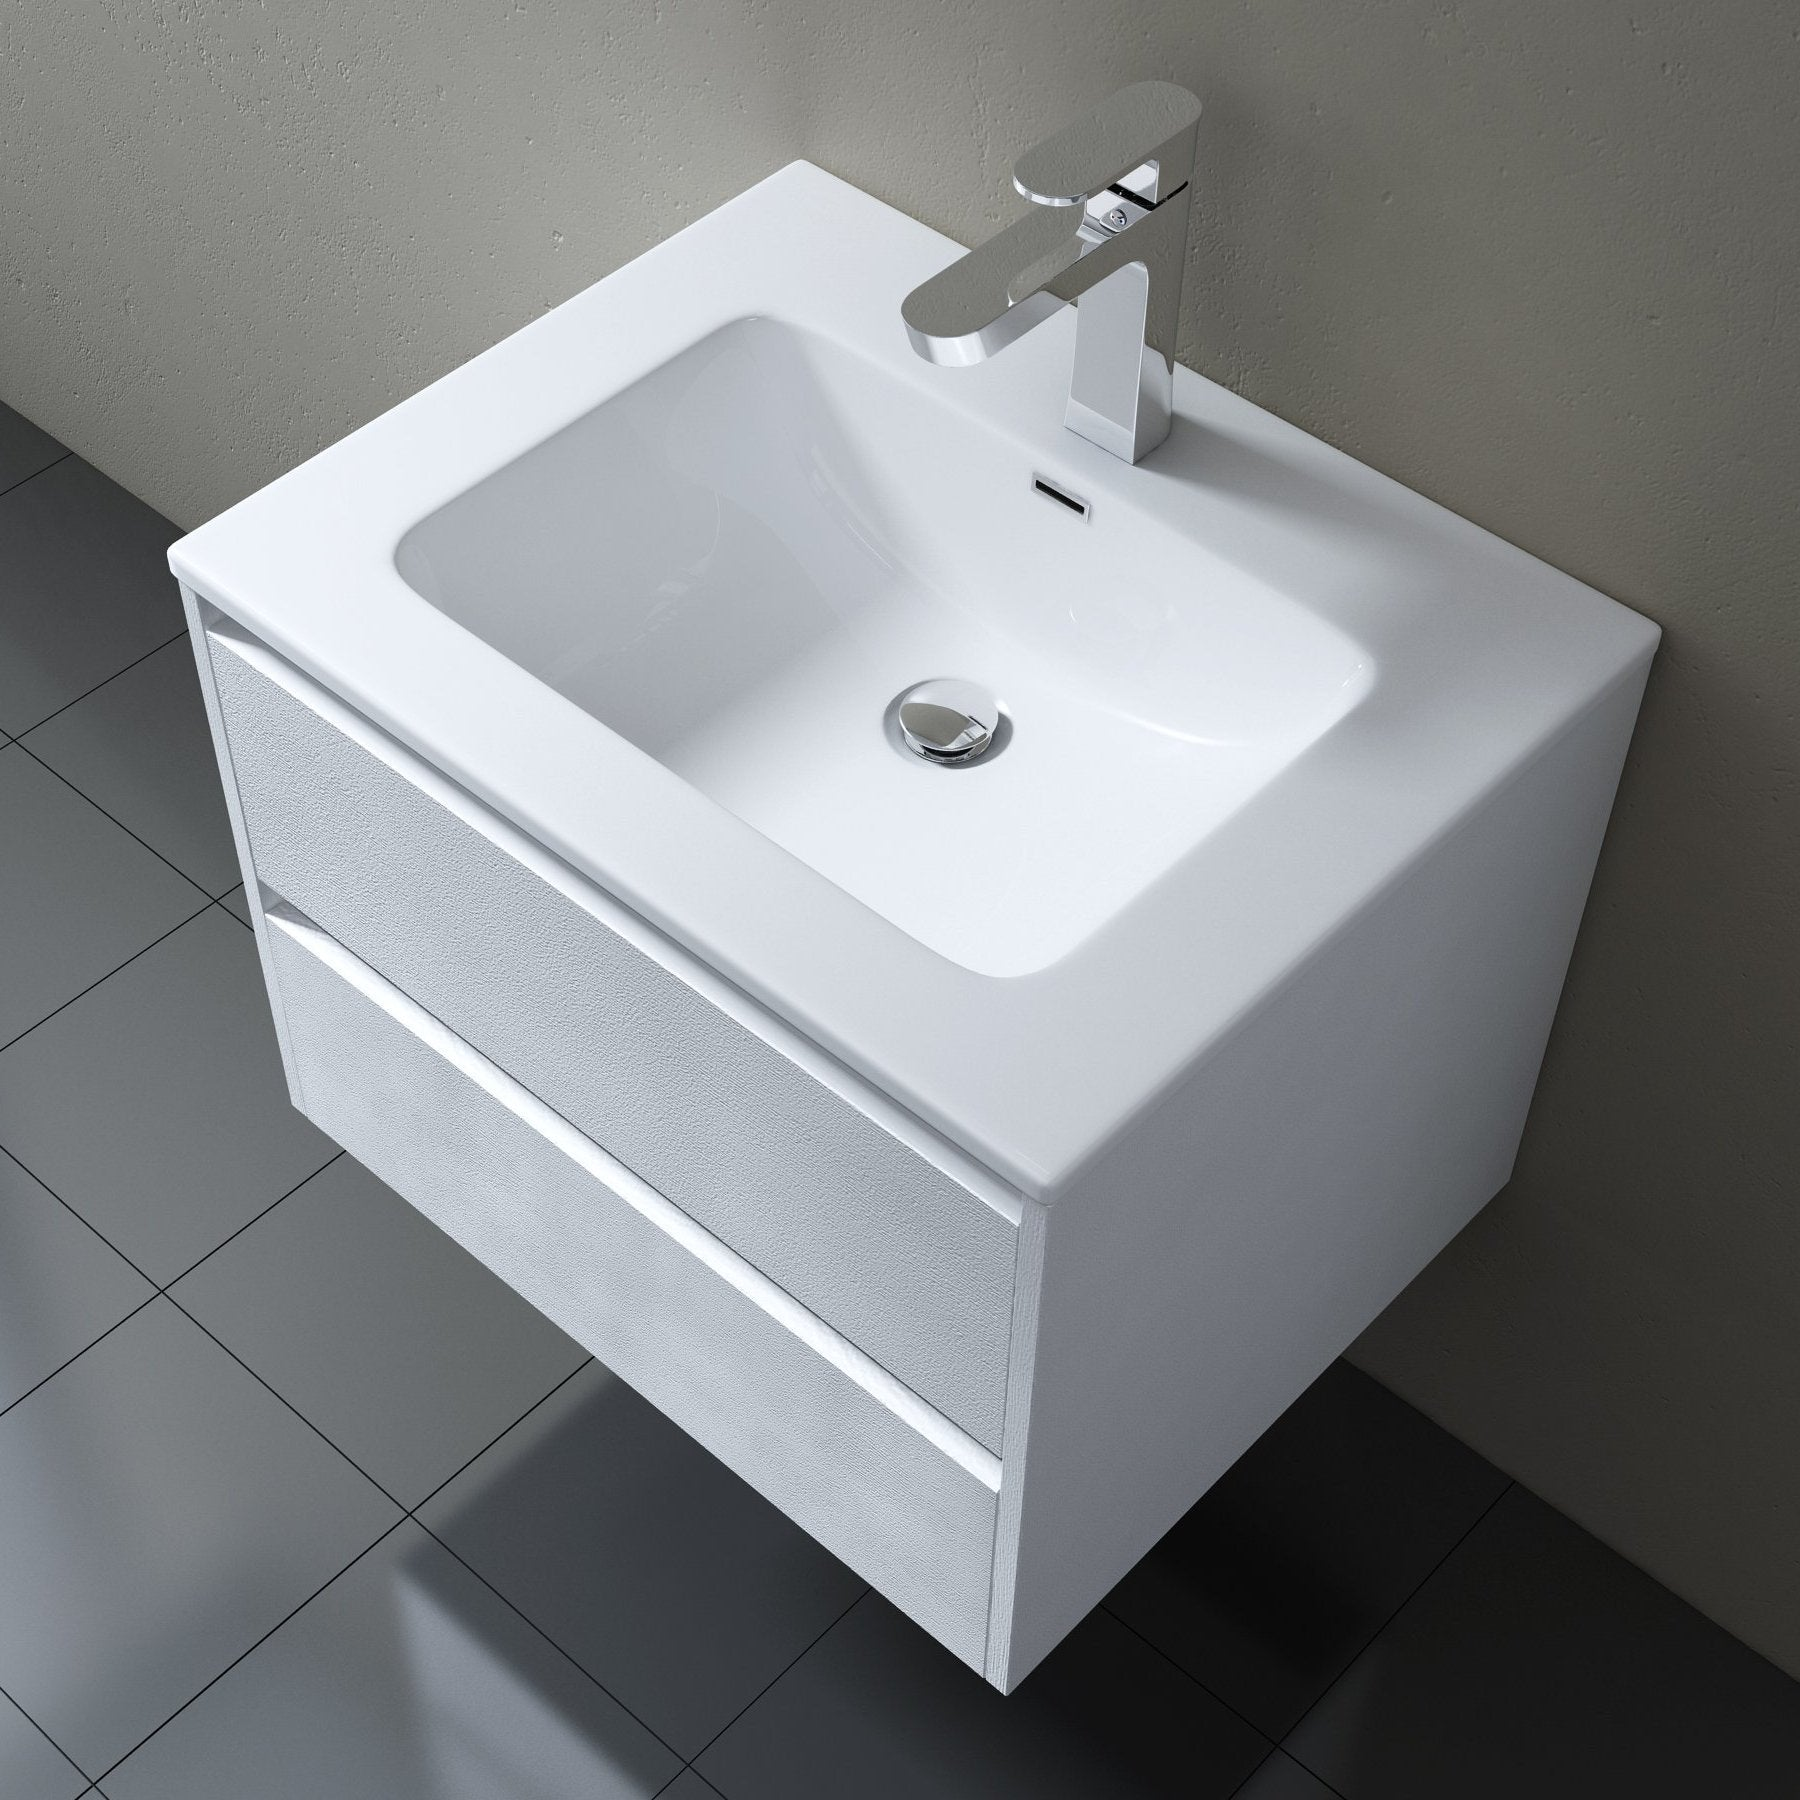 Positano Wall Mounted Vanity Unit With Basin White Gloss